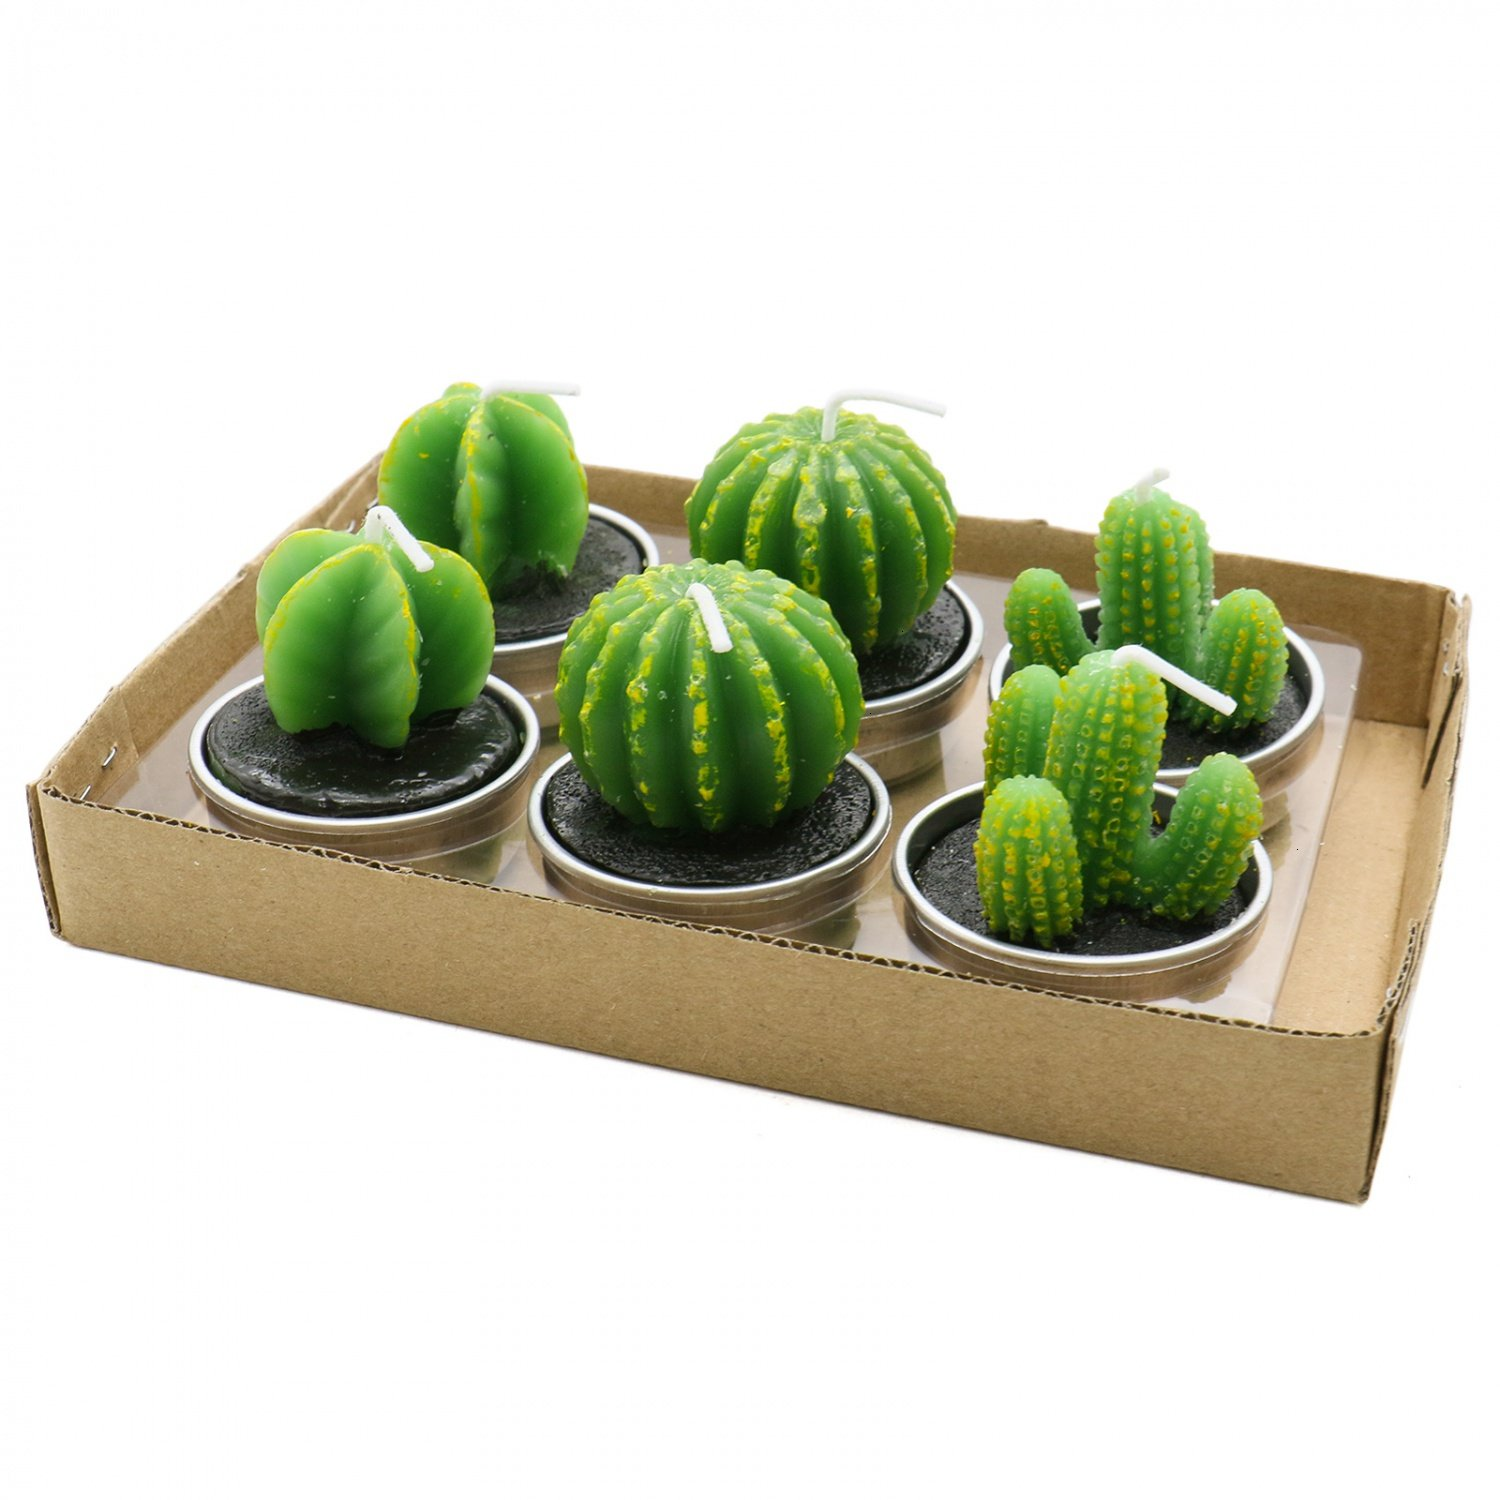 Rugjut 3 Styles Green Cactus Candle Tea Light Candles for Birthday Party Wedding Spa Home Decoration , 6 Pack